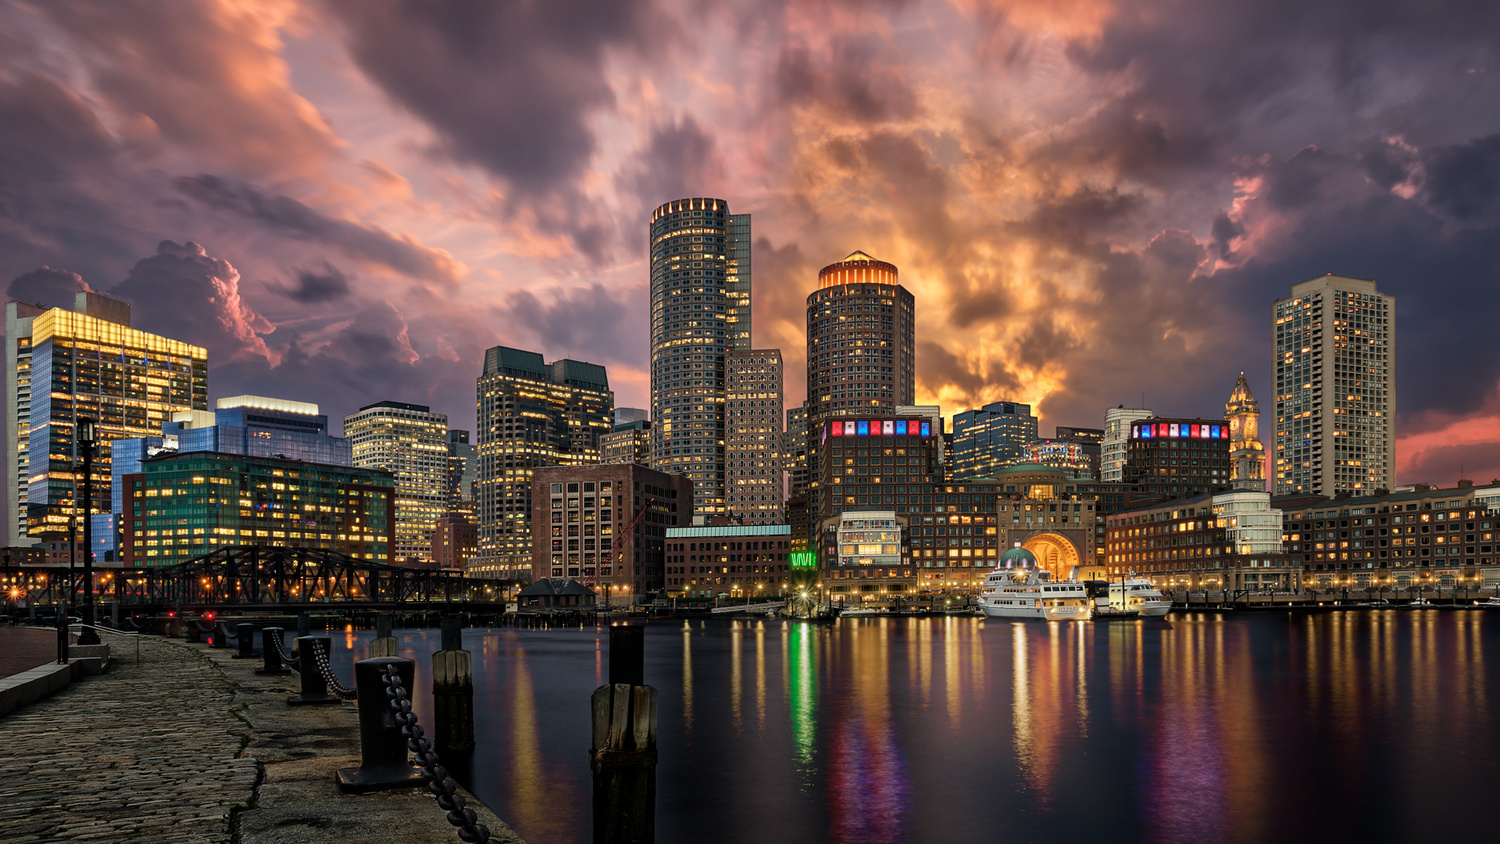 4th of July in Boston by Stas F